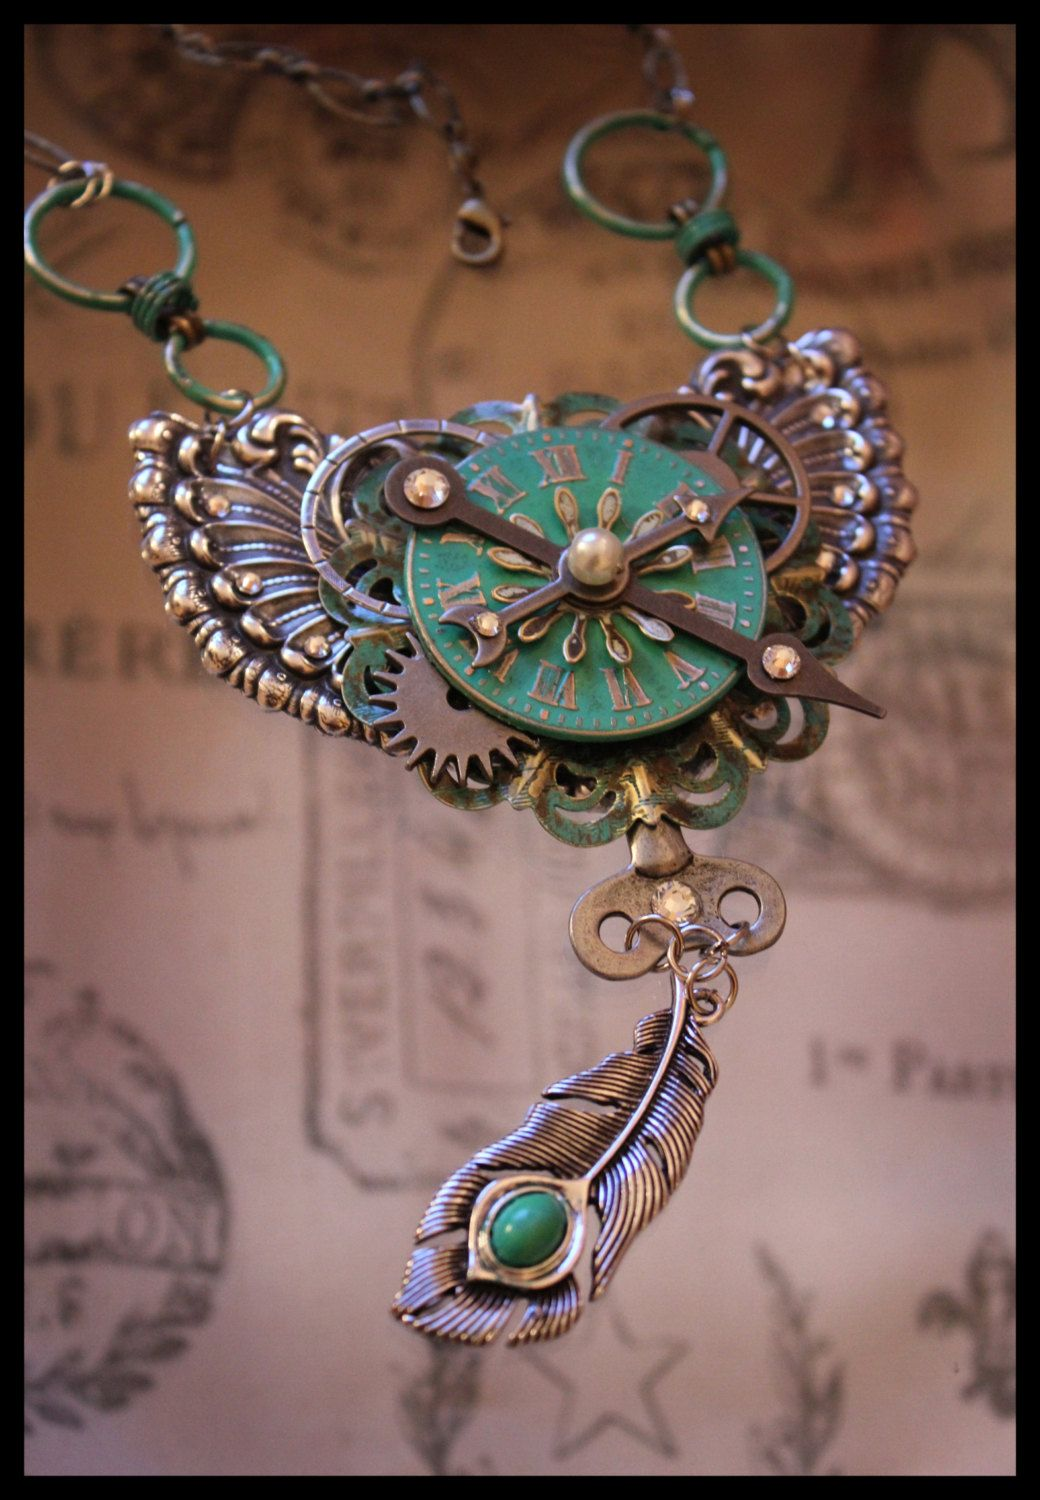 Steampunk Necklace  Peacock Inspired by AngelaVenArtwork on Etsy